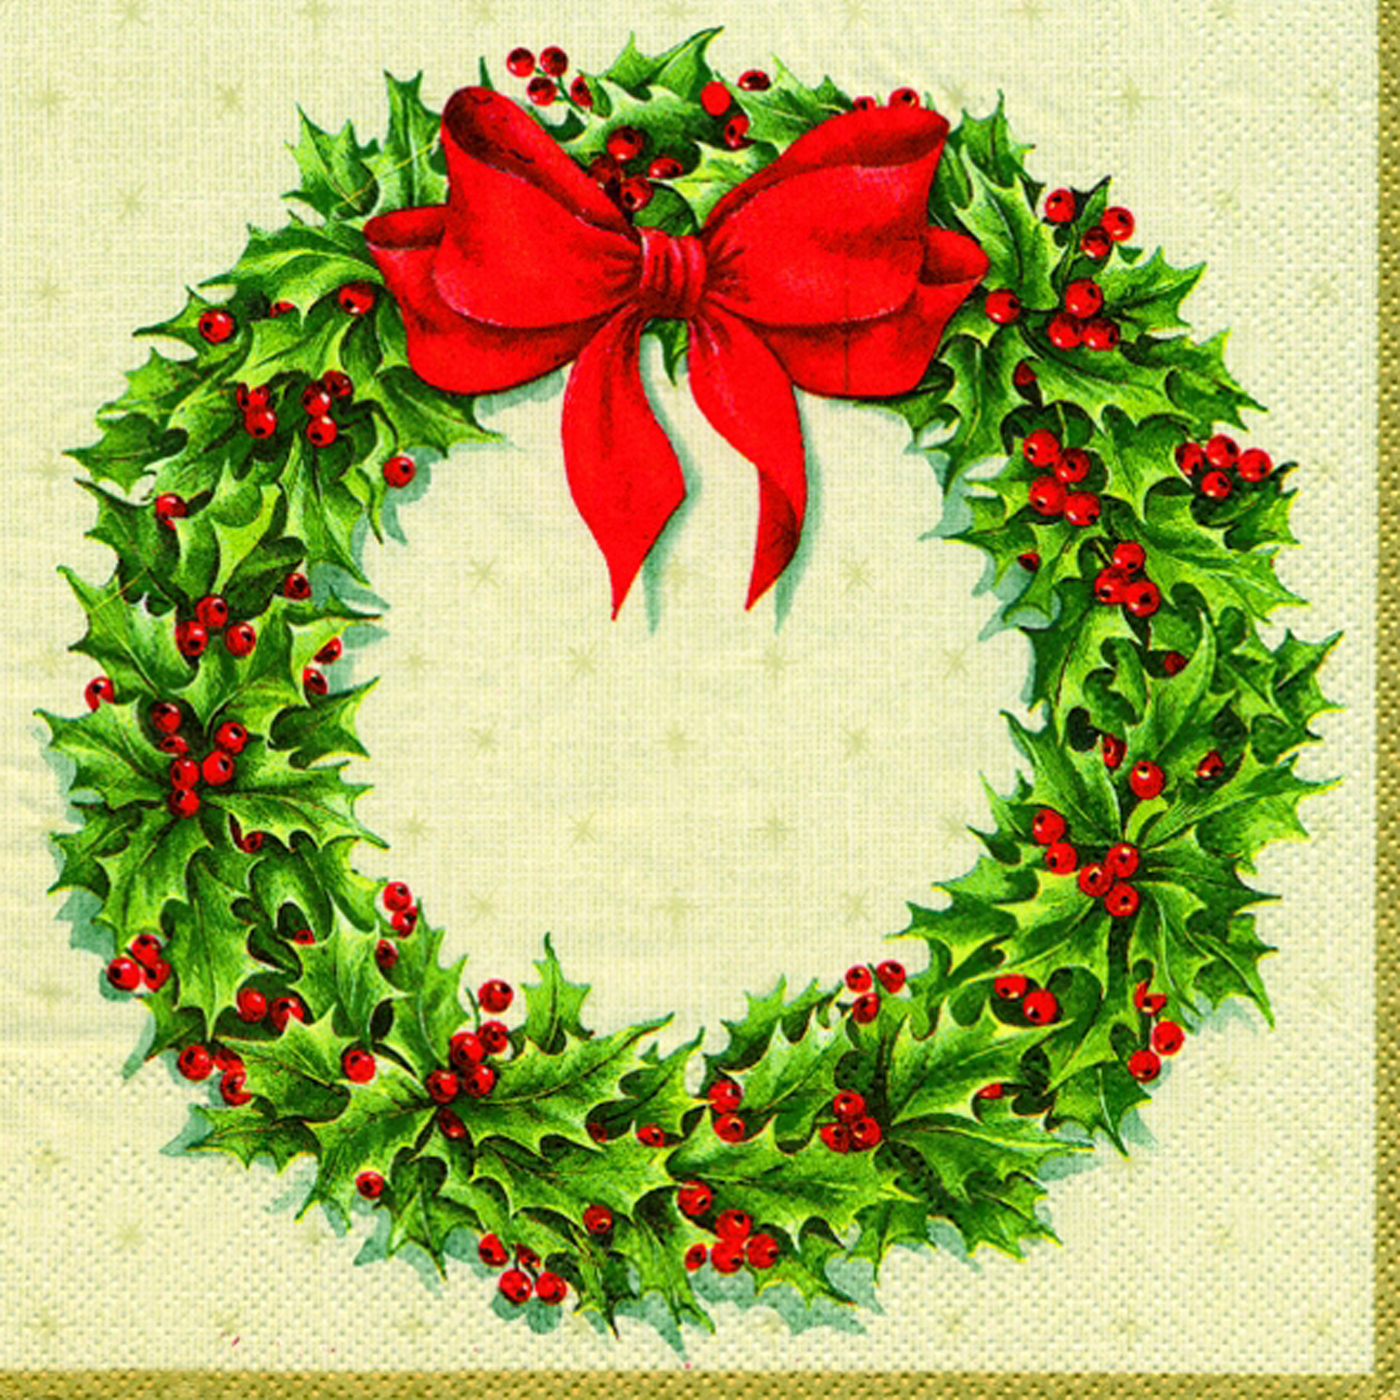 Image result for holly wreath images